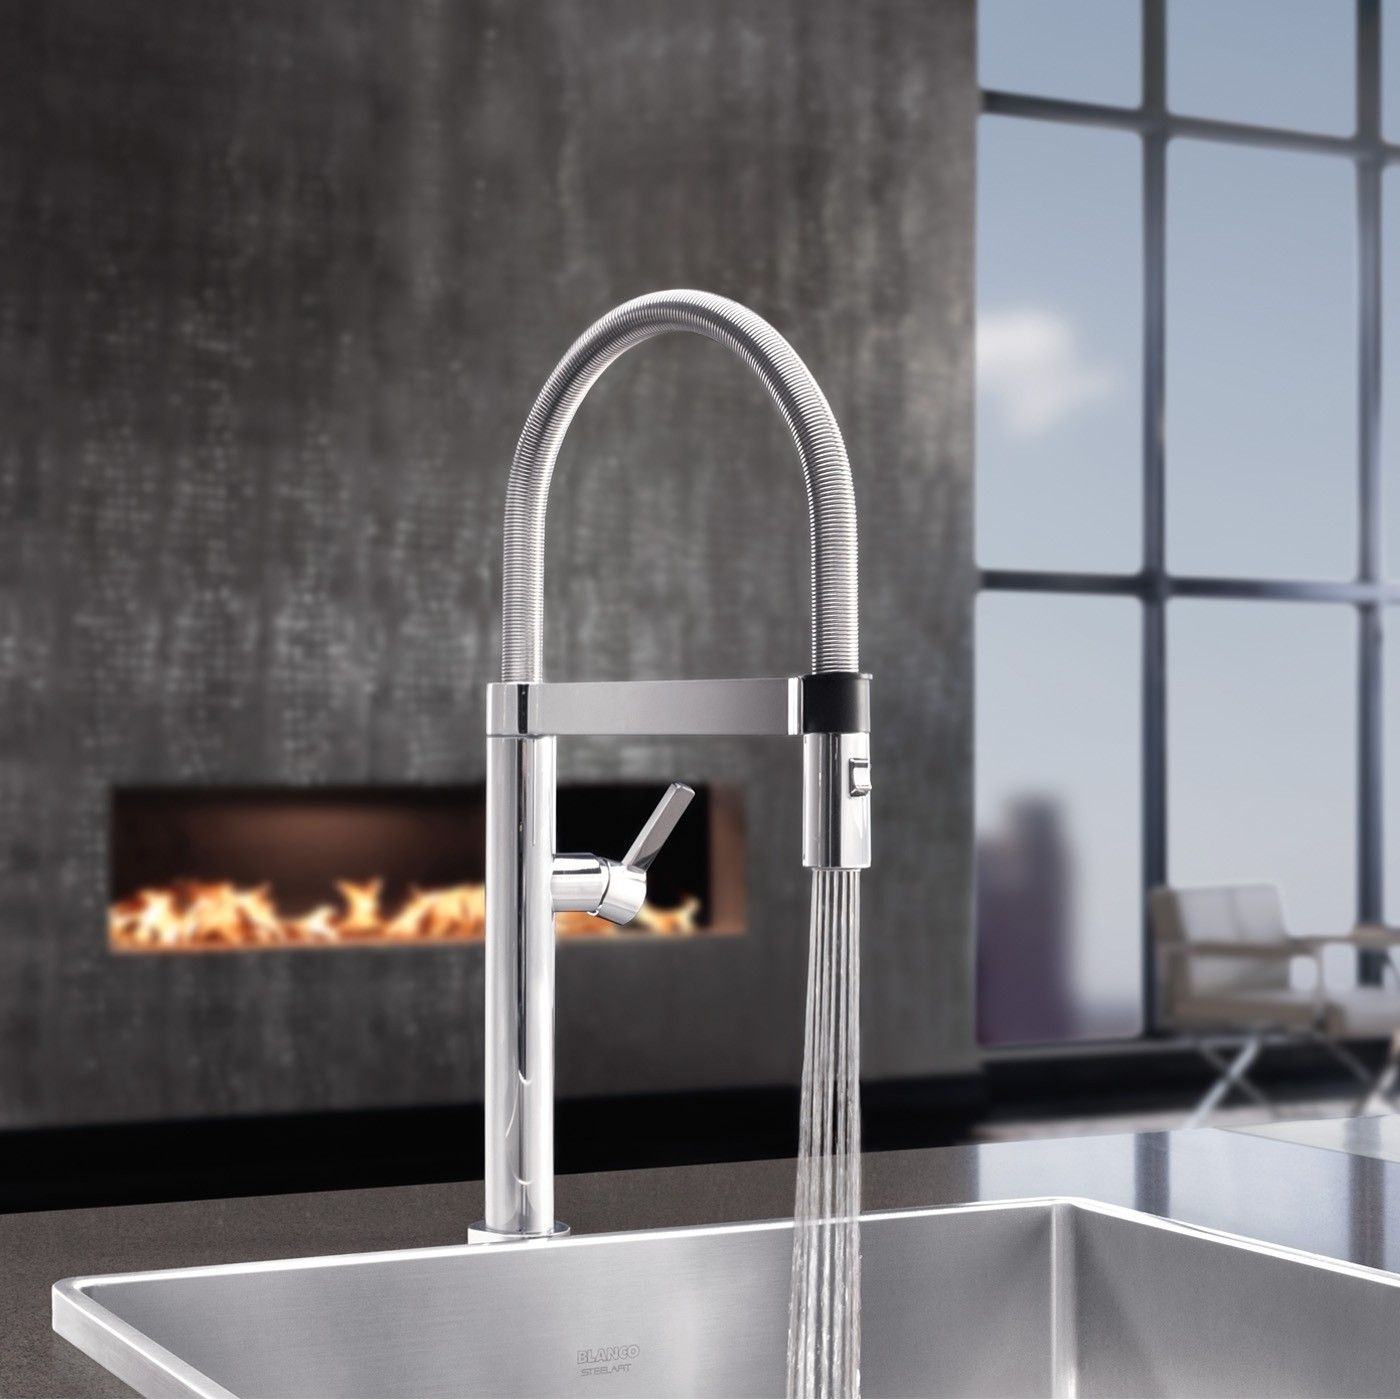 Culina mini pull down kitchen faucet kitchen faucets for Restaurant style kitchen faucet